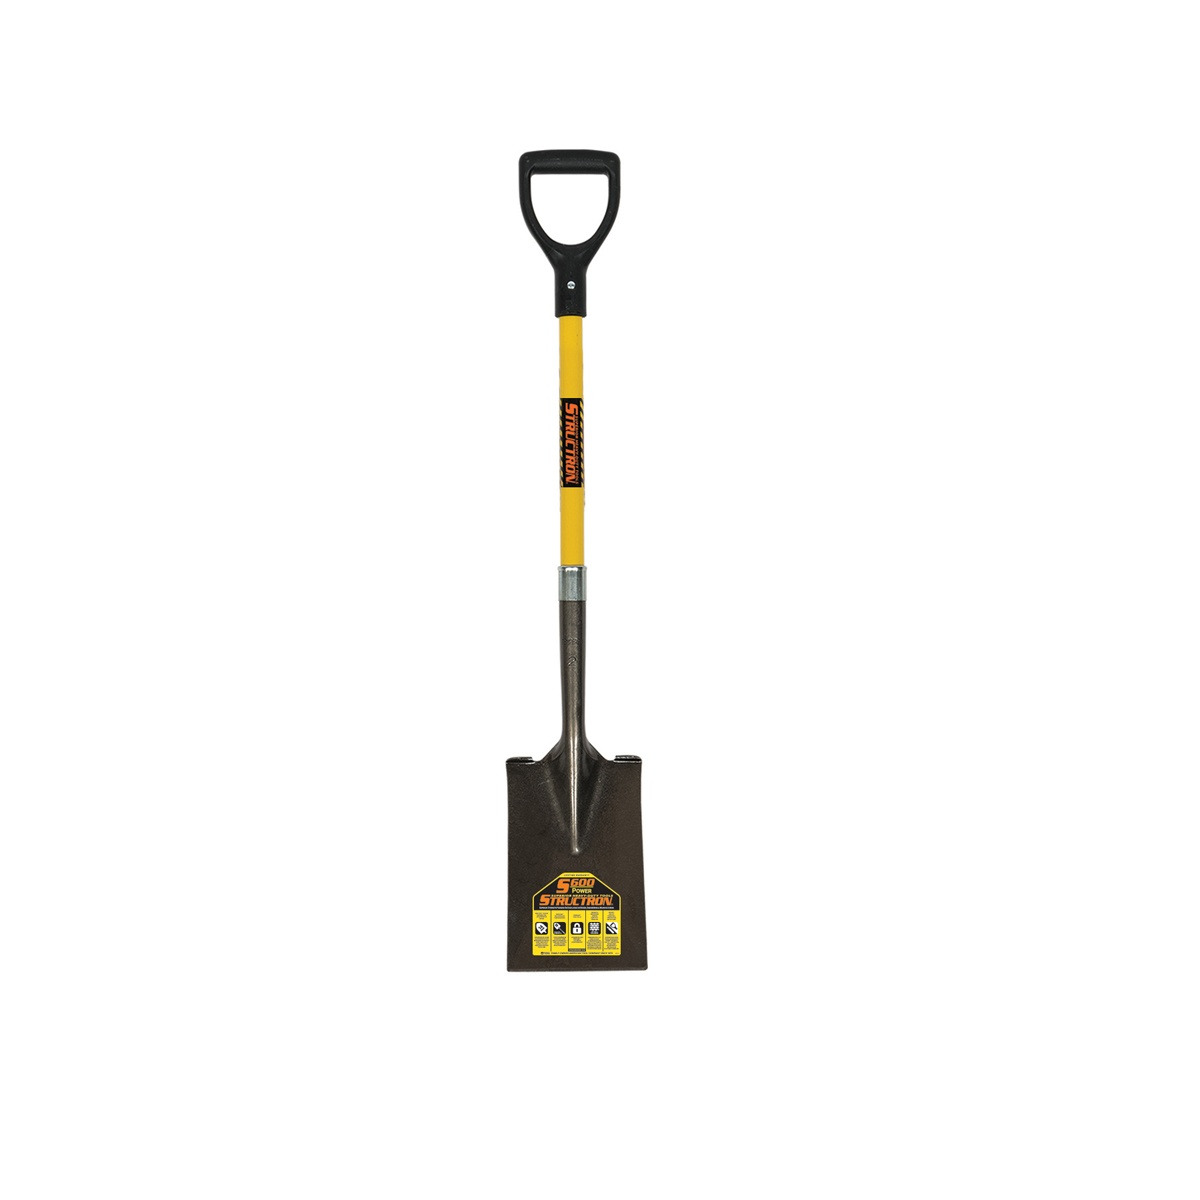 Structron® S600 Power™ Garden Spade with D-Handle